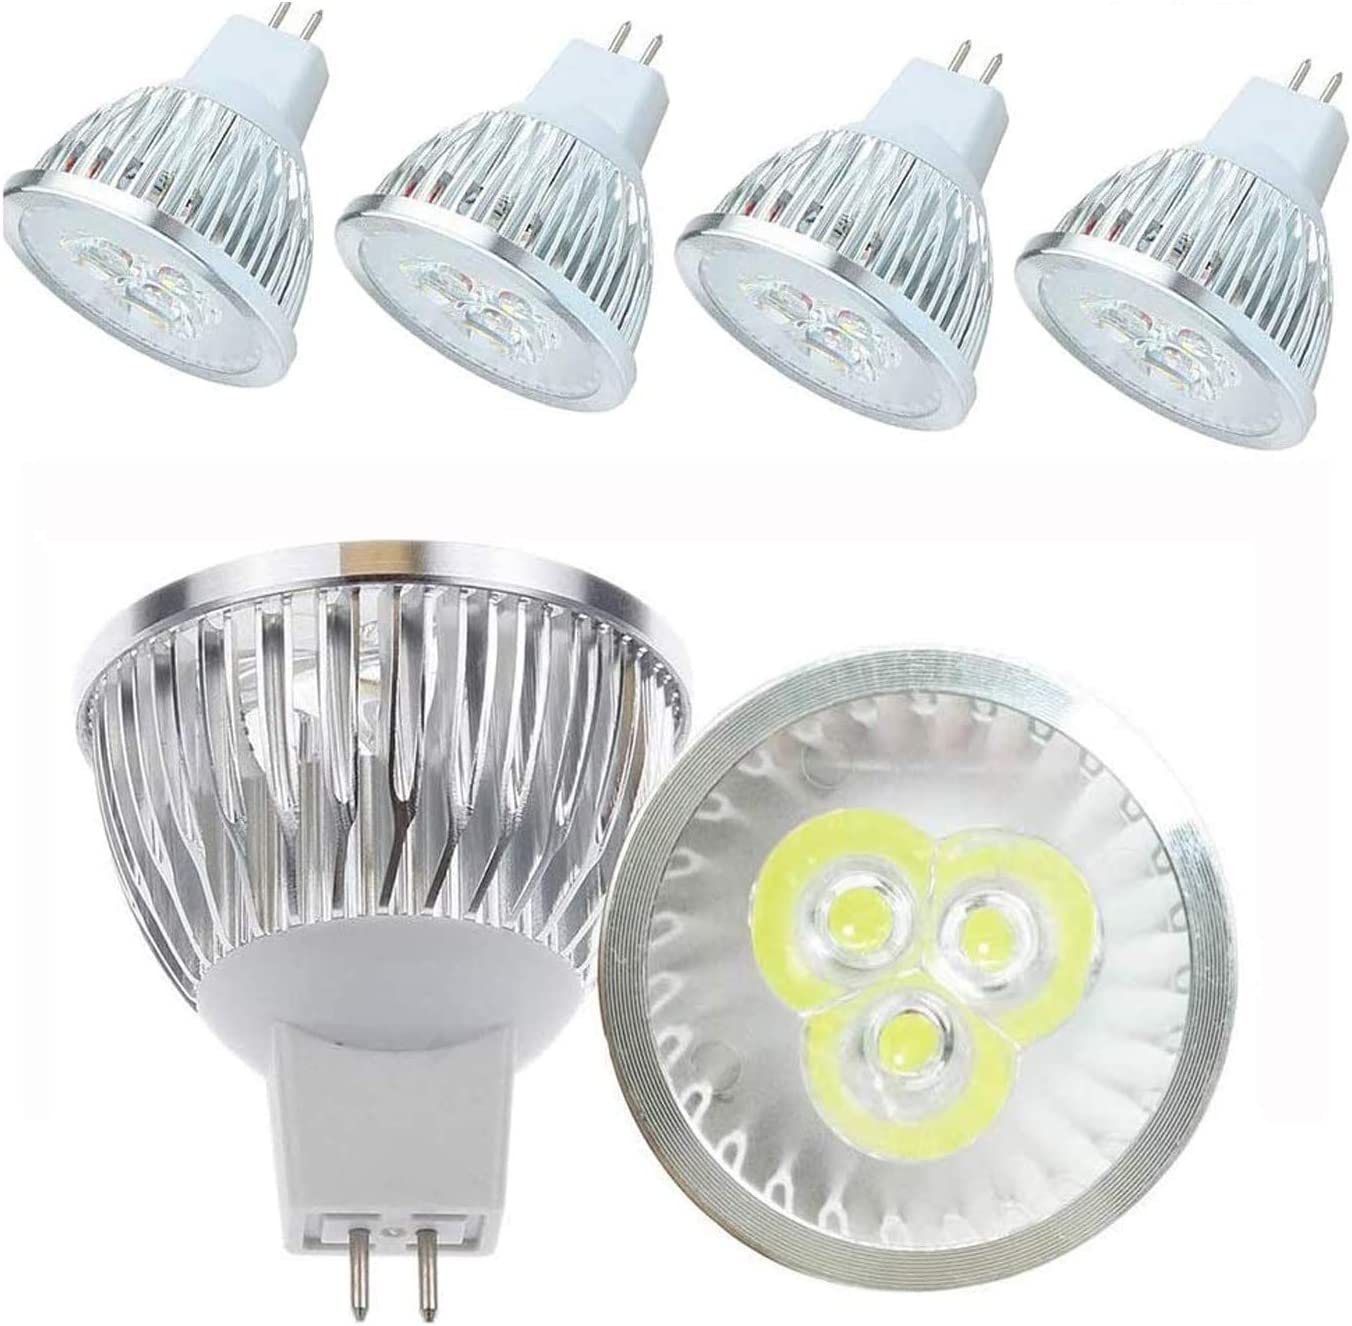 Brand New TCP LED Spotlight MR16 Non Dimmable 345Lm 5W Replacement 35W Lightbulb